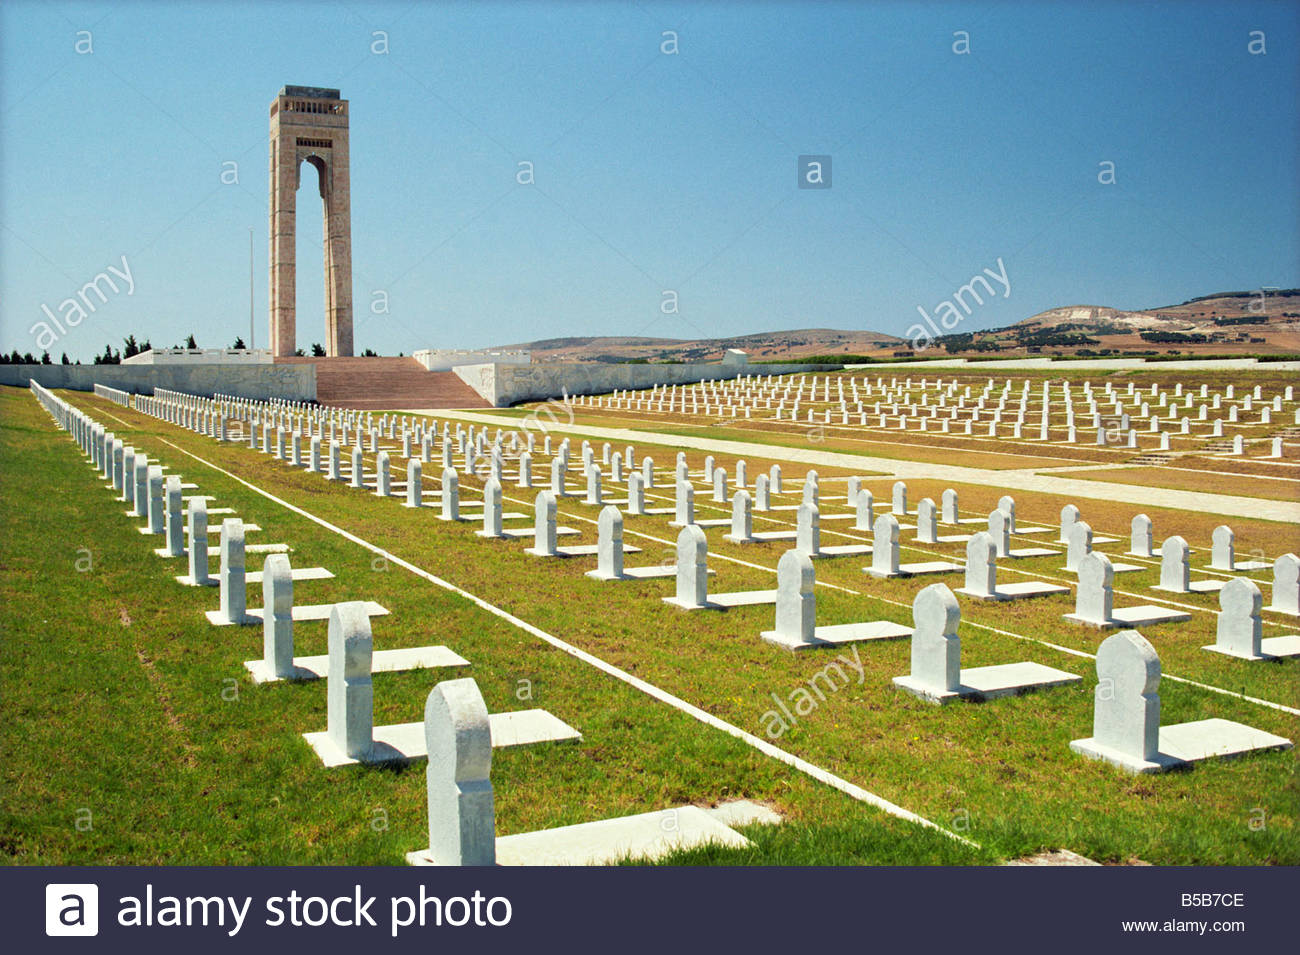 Monument of Martyrs, Bizerte, Tunisia, North Africa, Africa - Stock Image